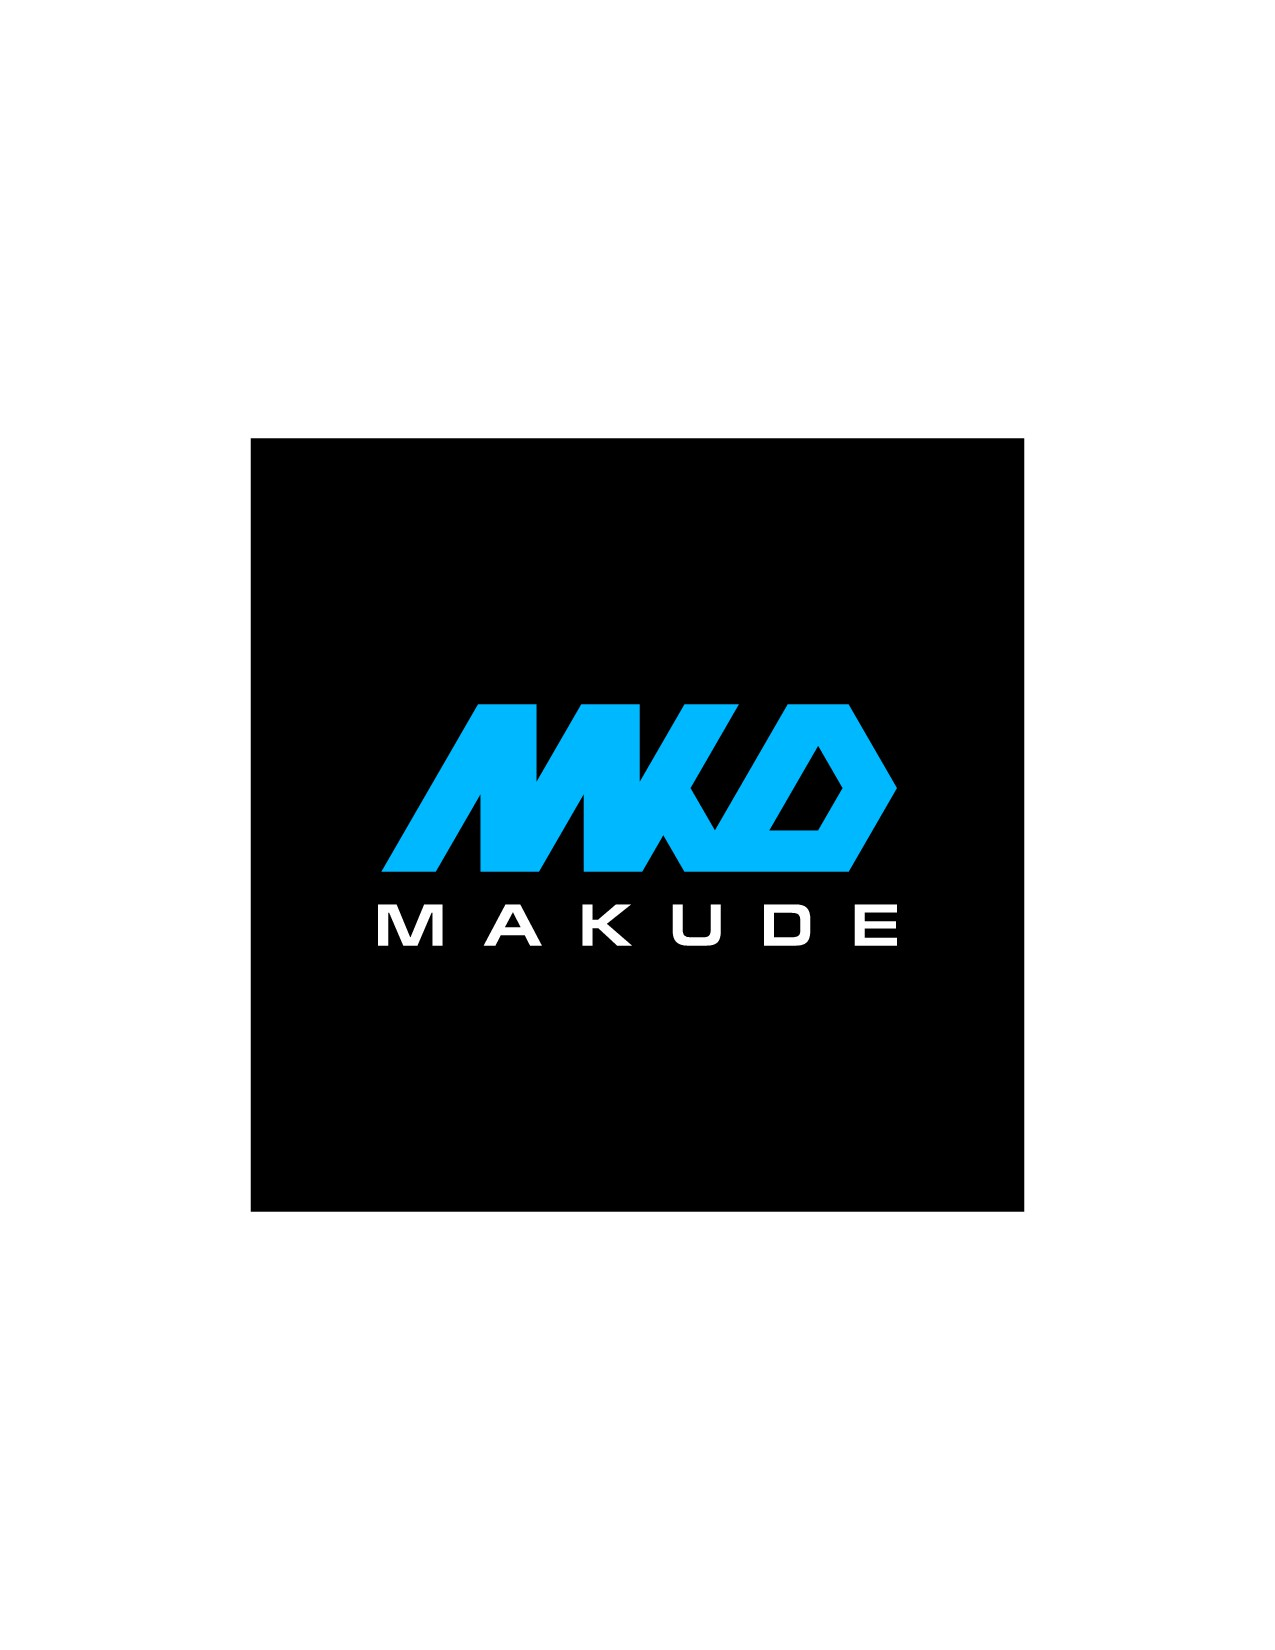 Create a strong brand identity with a logo for Makude